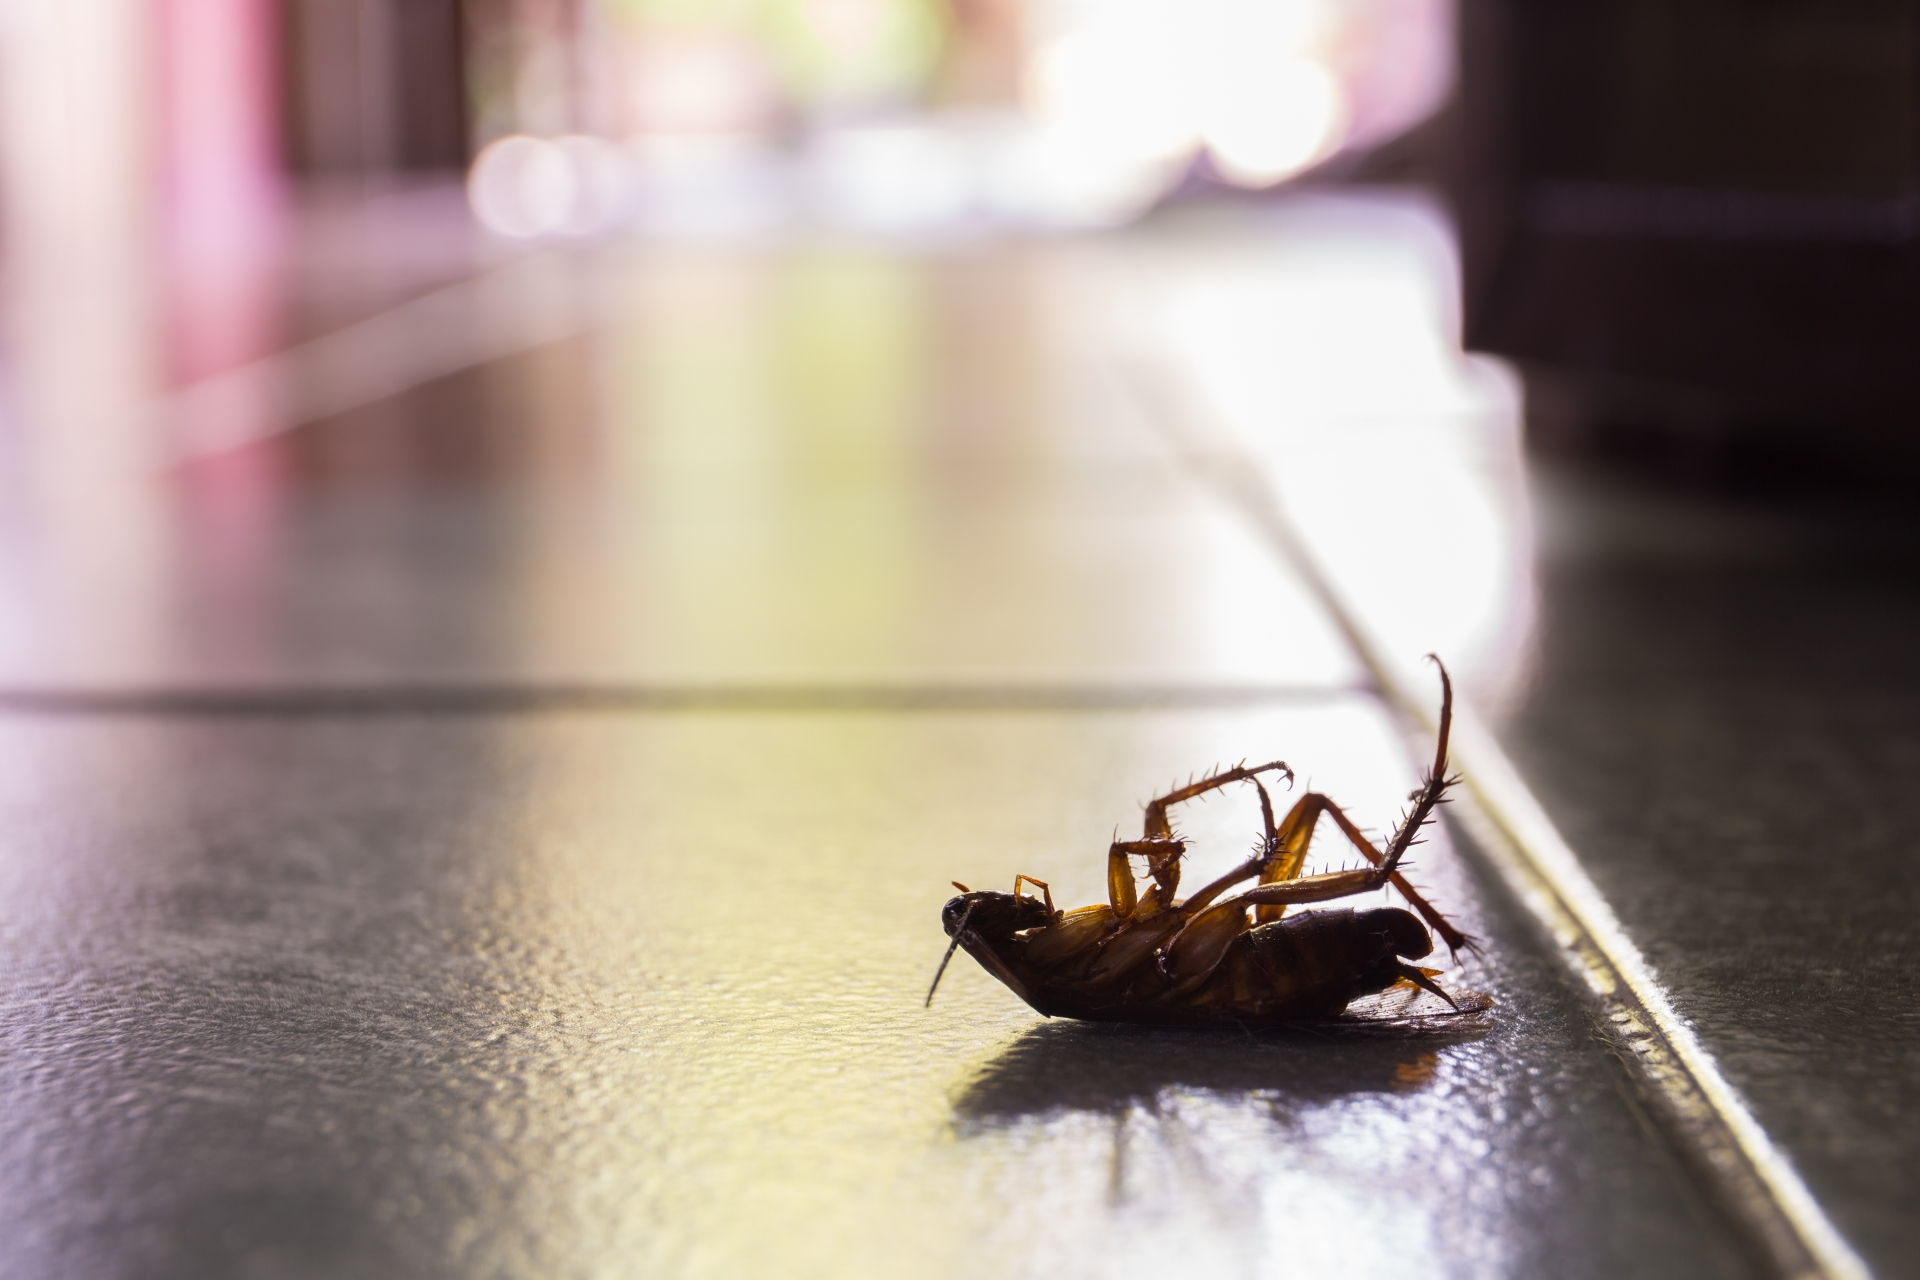 Cockroach Control, Pest Control in New Cross, New Cross Gate, SE14. Call Now 020 8166 9746